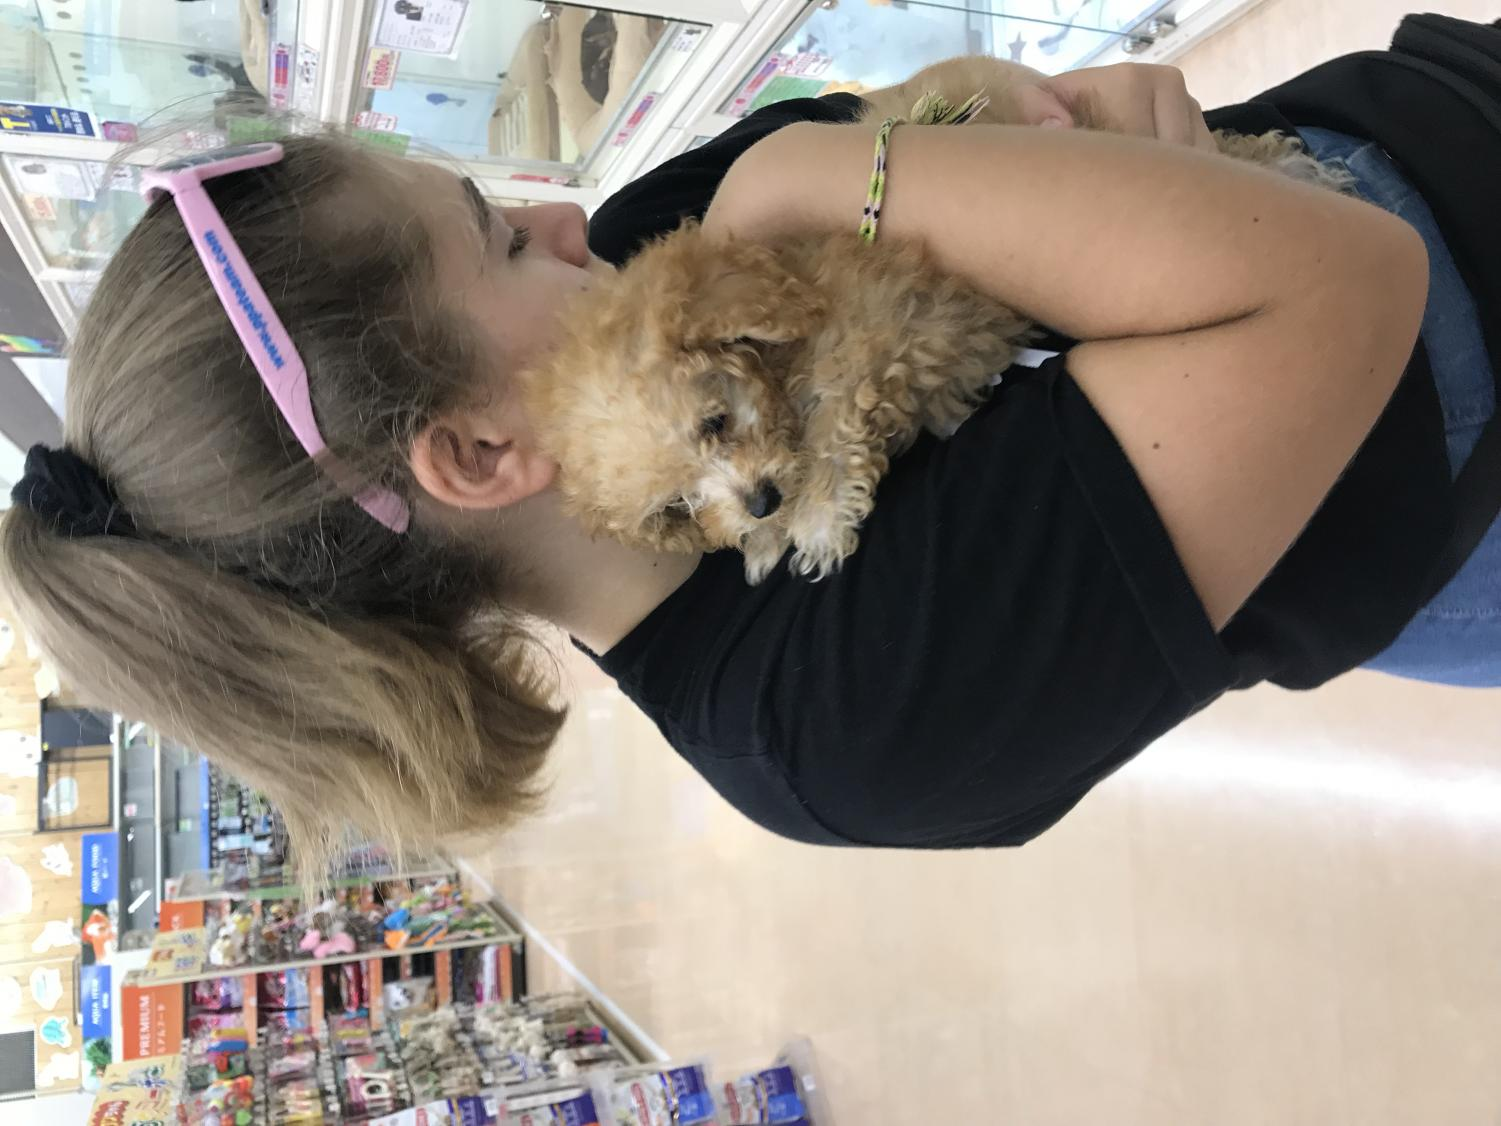 Eva+Levy+holds+a+puppy+for+sale+at+the+grocery+store+in+Tokyo%2C+Japan+she+named+Simba%2FCarji.+In+addition+to+food+and+generic+supplies%2C+the+store+also+sold+other+pets+such+as+turtles%2C+cats%2C+fish%2C+and+parriots.+There+are+puppy+stores+all+over+Tokyo%2C+Japan.+One+chain+puppy+store+called+%22P%27s+Firsts%22+has+multiple+locations+in+Shebuya.+If+someone+in+Japan+wishes+to+buy+a+puppy%2C+they+can+take+it+home+for+a+few+days+as+a+%22test+run%22.+This+is+what+my+friend+Lisa+Sugimura---whom+I+stayed+with+for+two+weeks---did+with+her+dog%2C+Roxie.+Lisa+is+alergic+to+dogs+so+they+wanted+to+make+sure+Roxie+would+be+a+good+fit+to+the+family.+